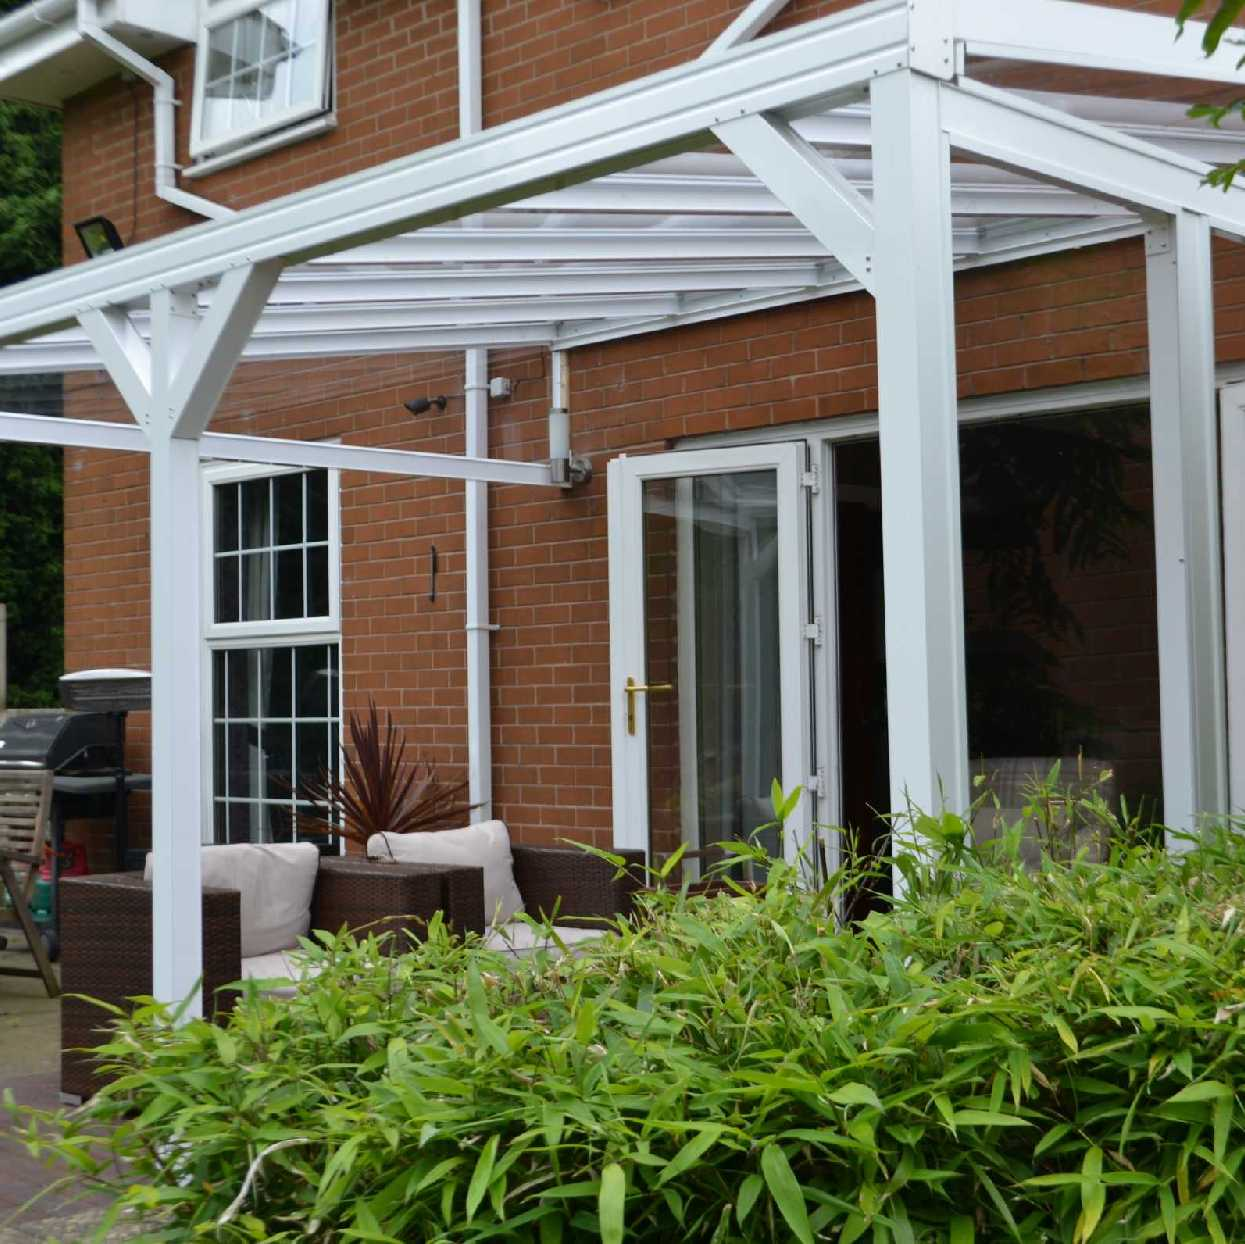 Omega Smart White Lean-To Canopy with 6mm Glass Clear Plate Polycarbonate Glazing - 2.1m (W) x 2.0m (P), (2) Supporting Posts from Omega Build